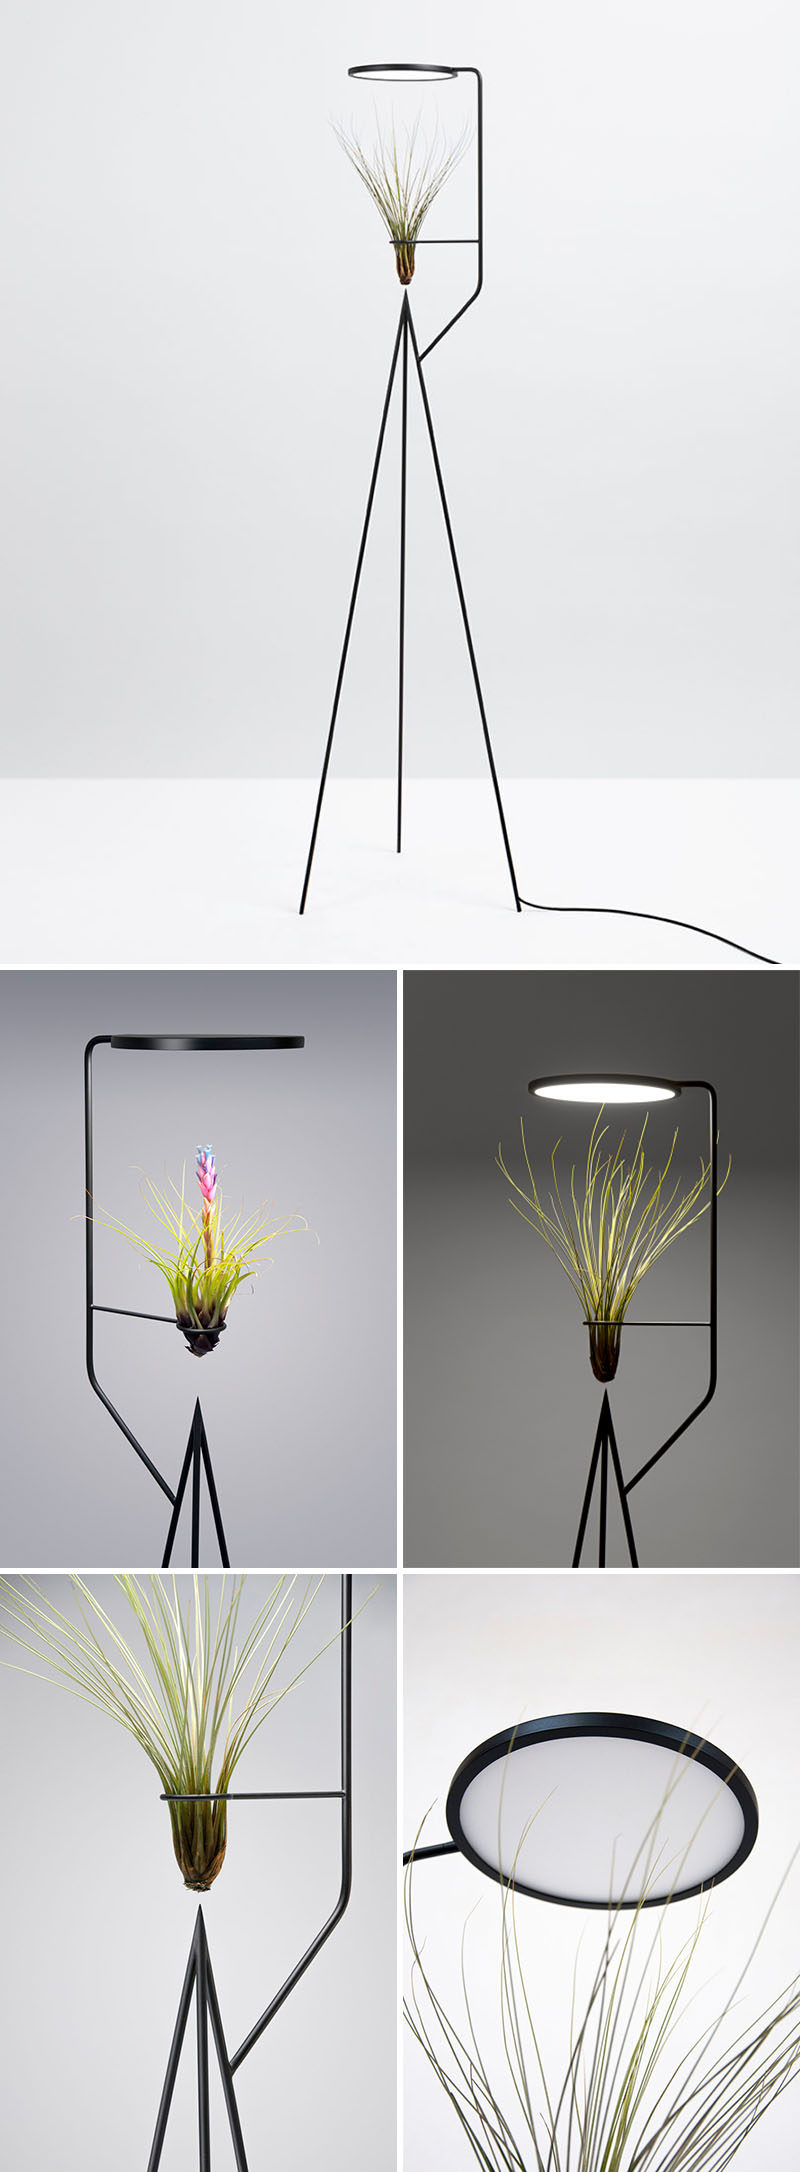 The sculptural form of this matte black air plant holder, allows it to have the LED light positioned directly above the plant, and therefore highlights the design of the plant in a minimalist way.